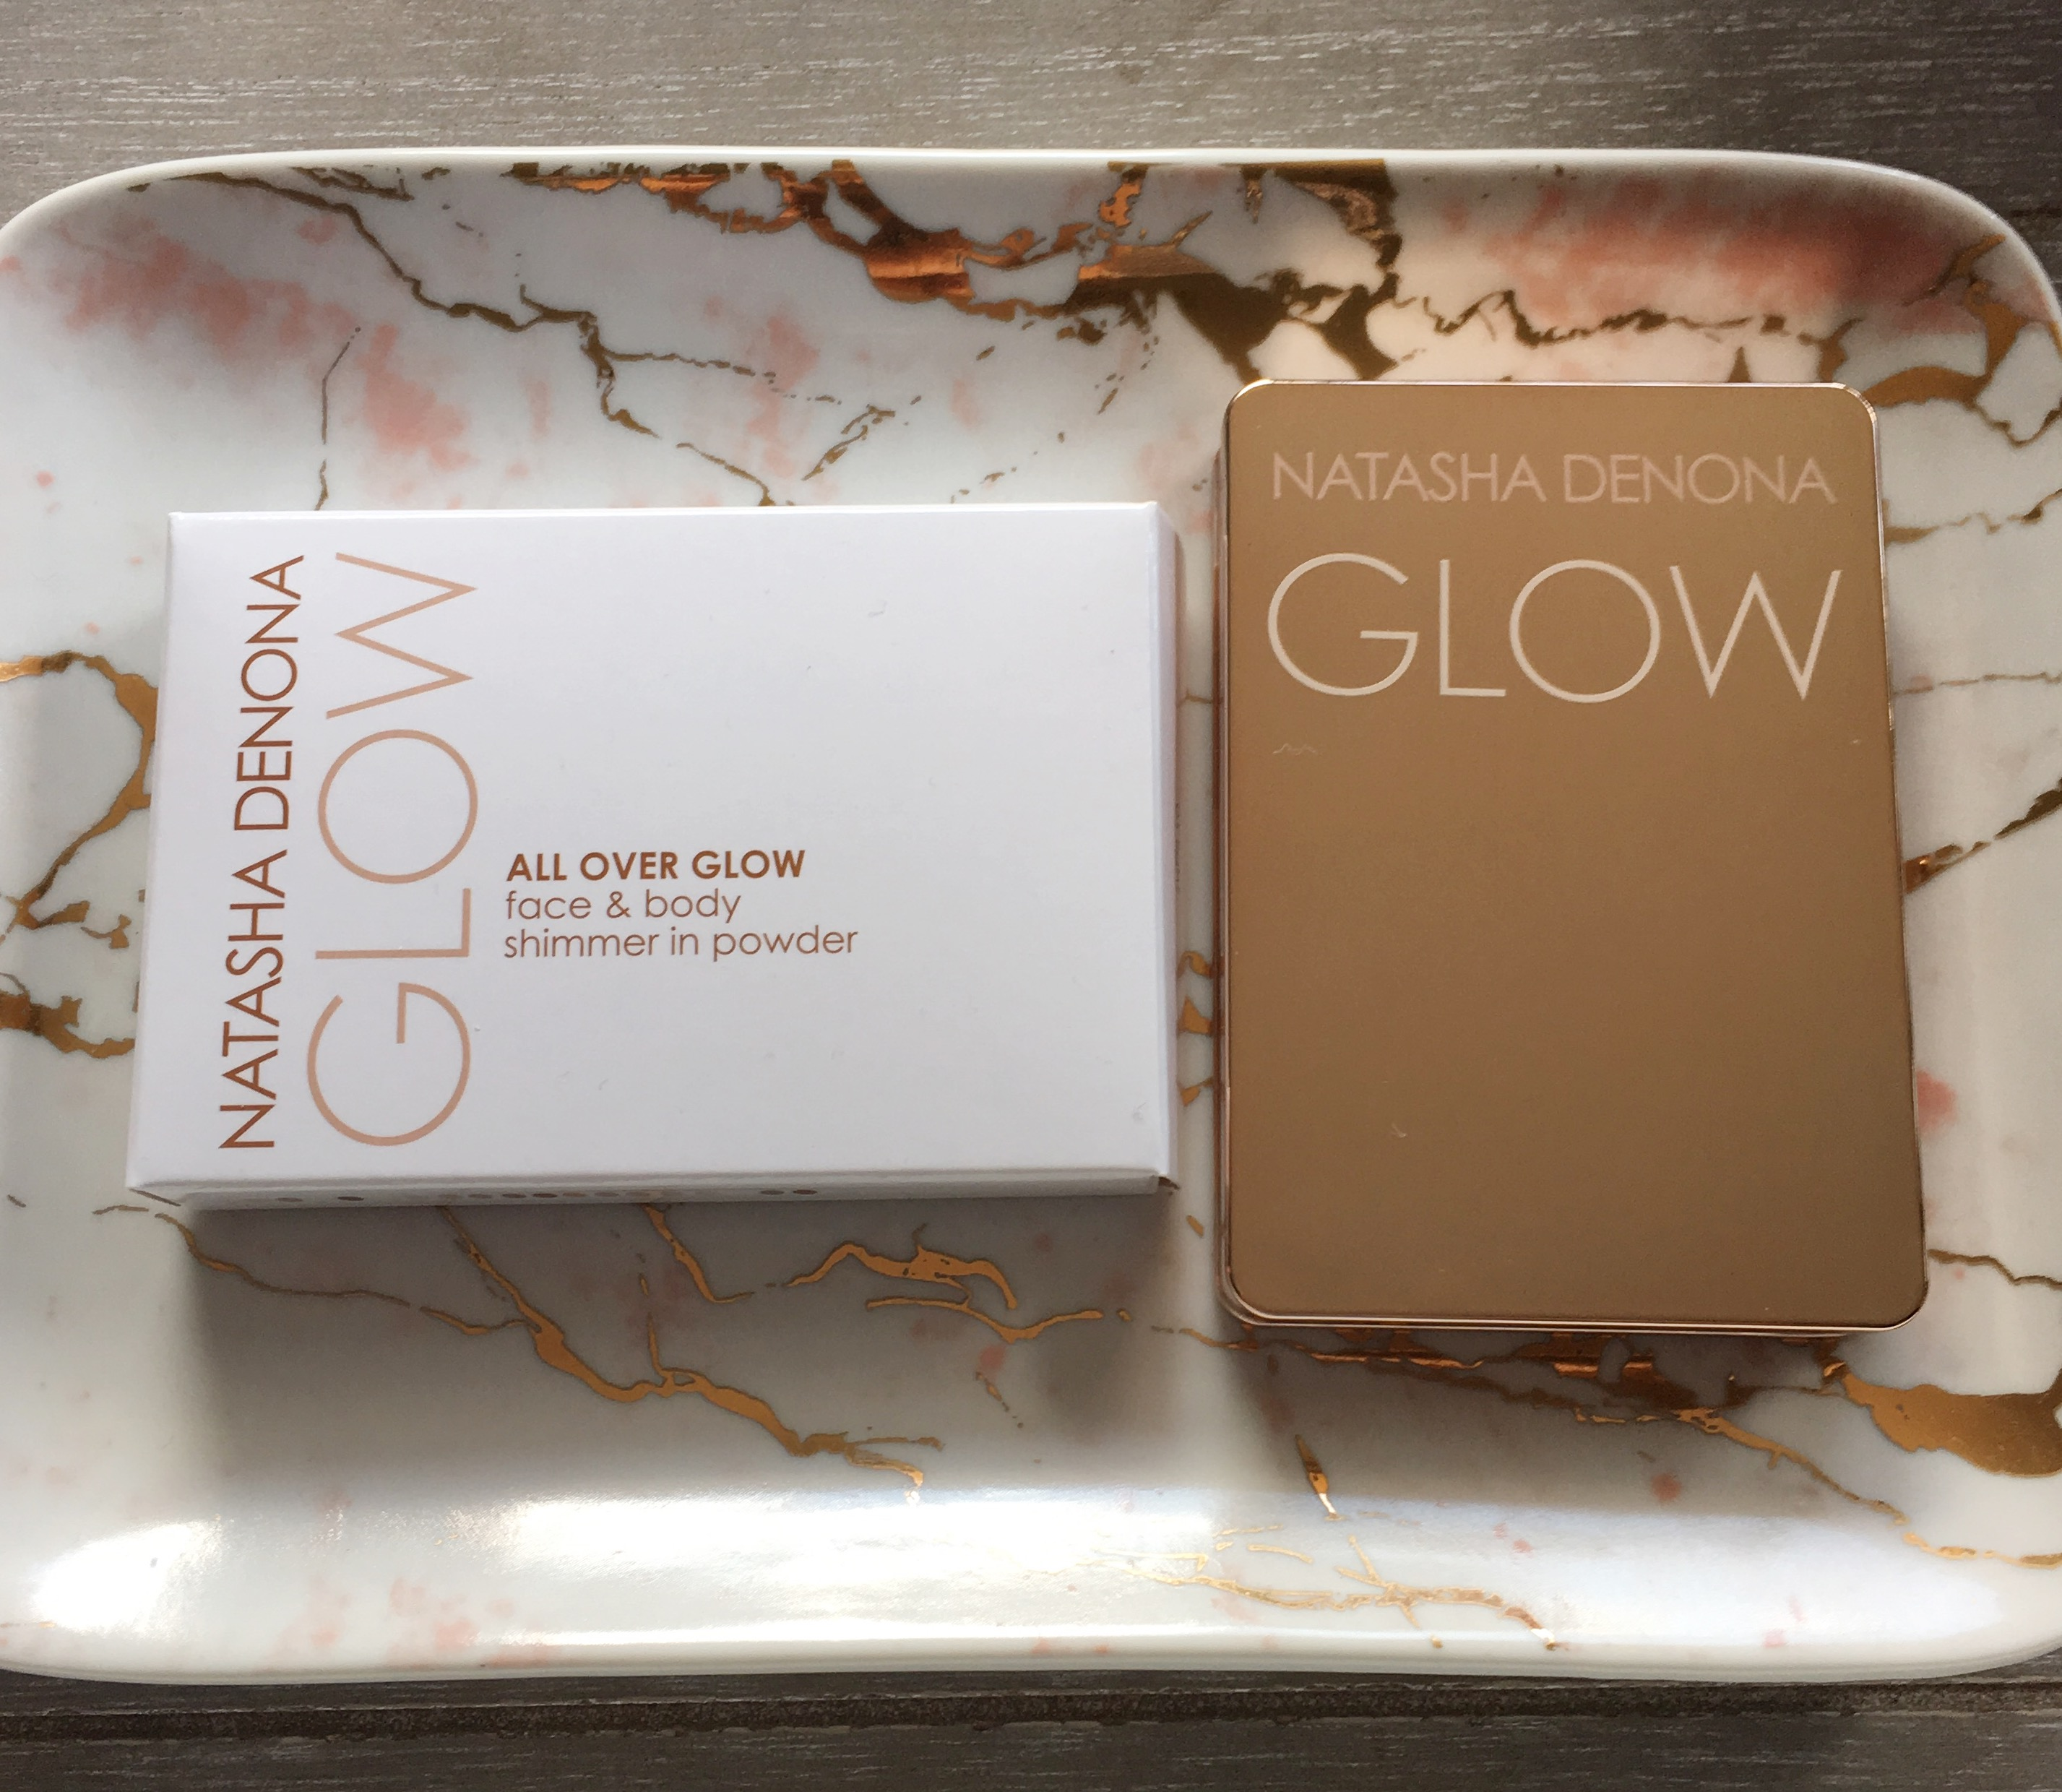 Natasha Denona All Over Glow Face & Body Shimmer in Powder 01 Light